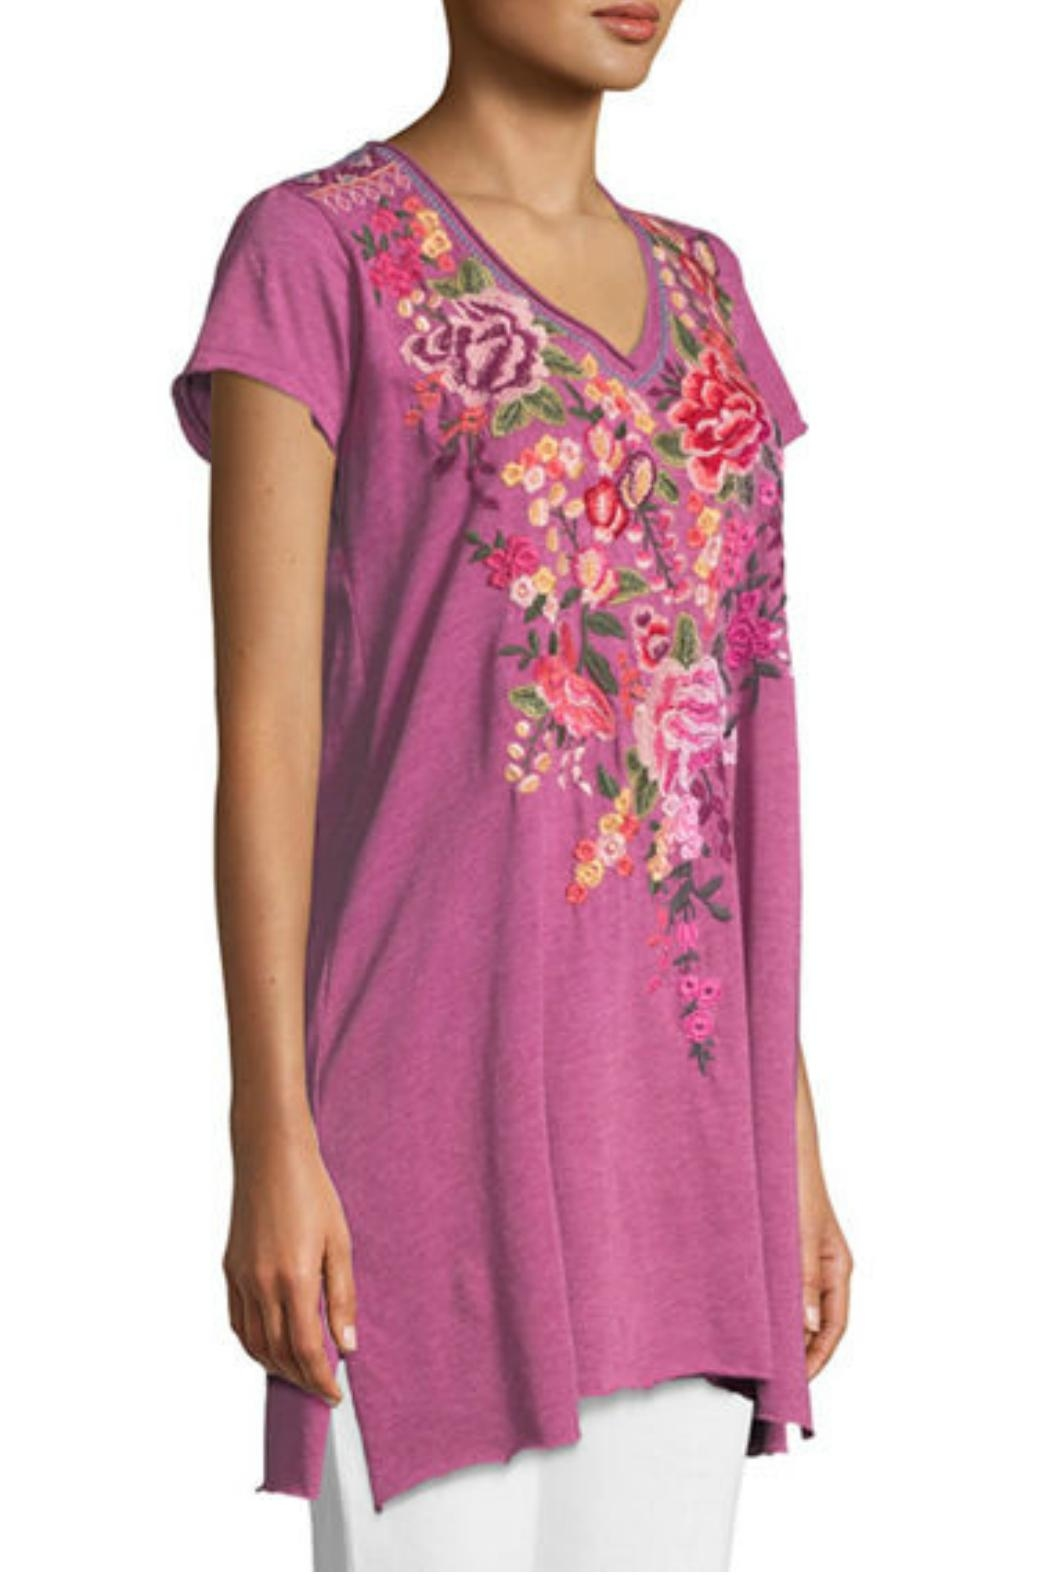 Johnny Was Grape Adeline Tunic - Main Image